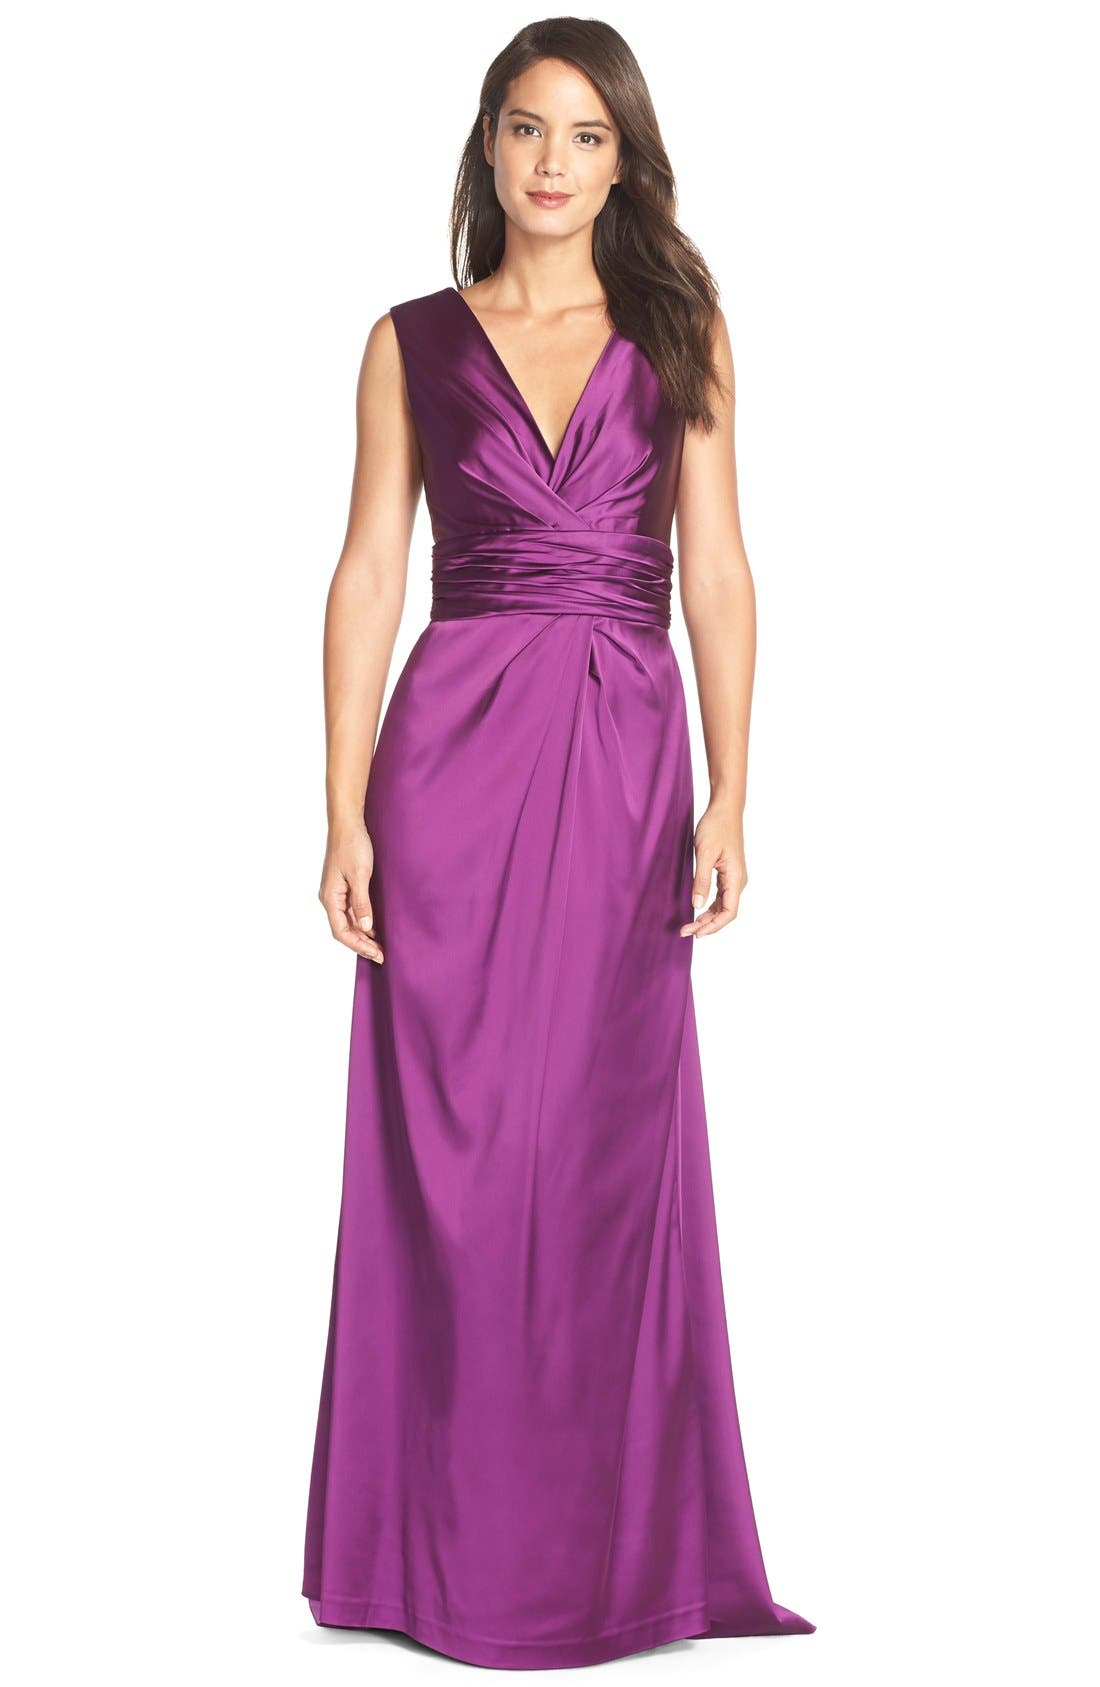 Gathered Satin Gown,                         Main,                         color, Aubergine